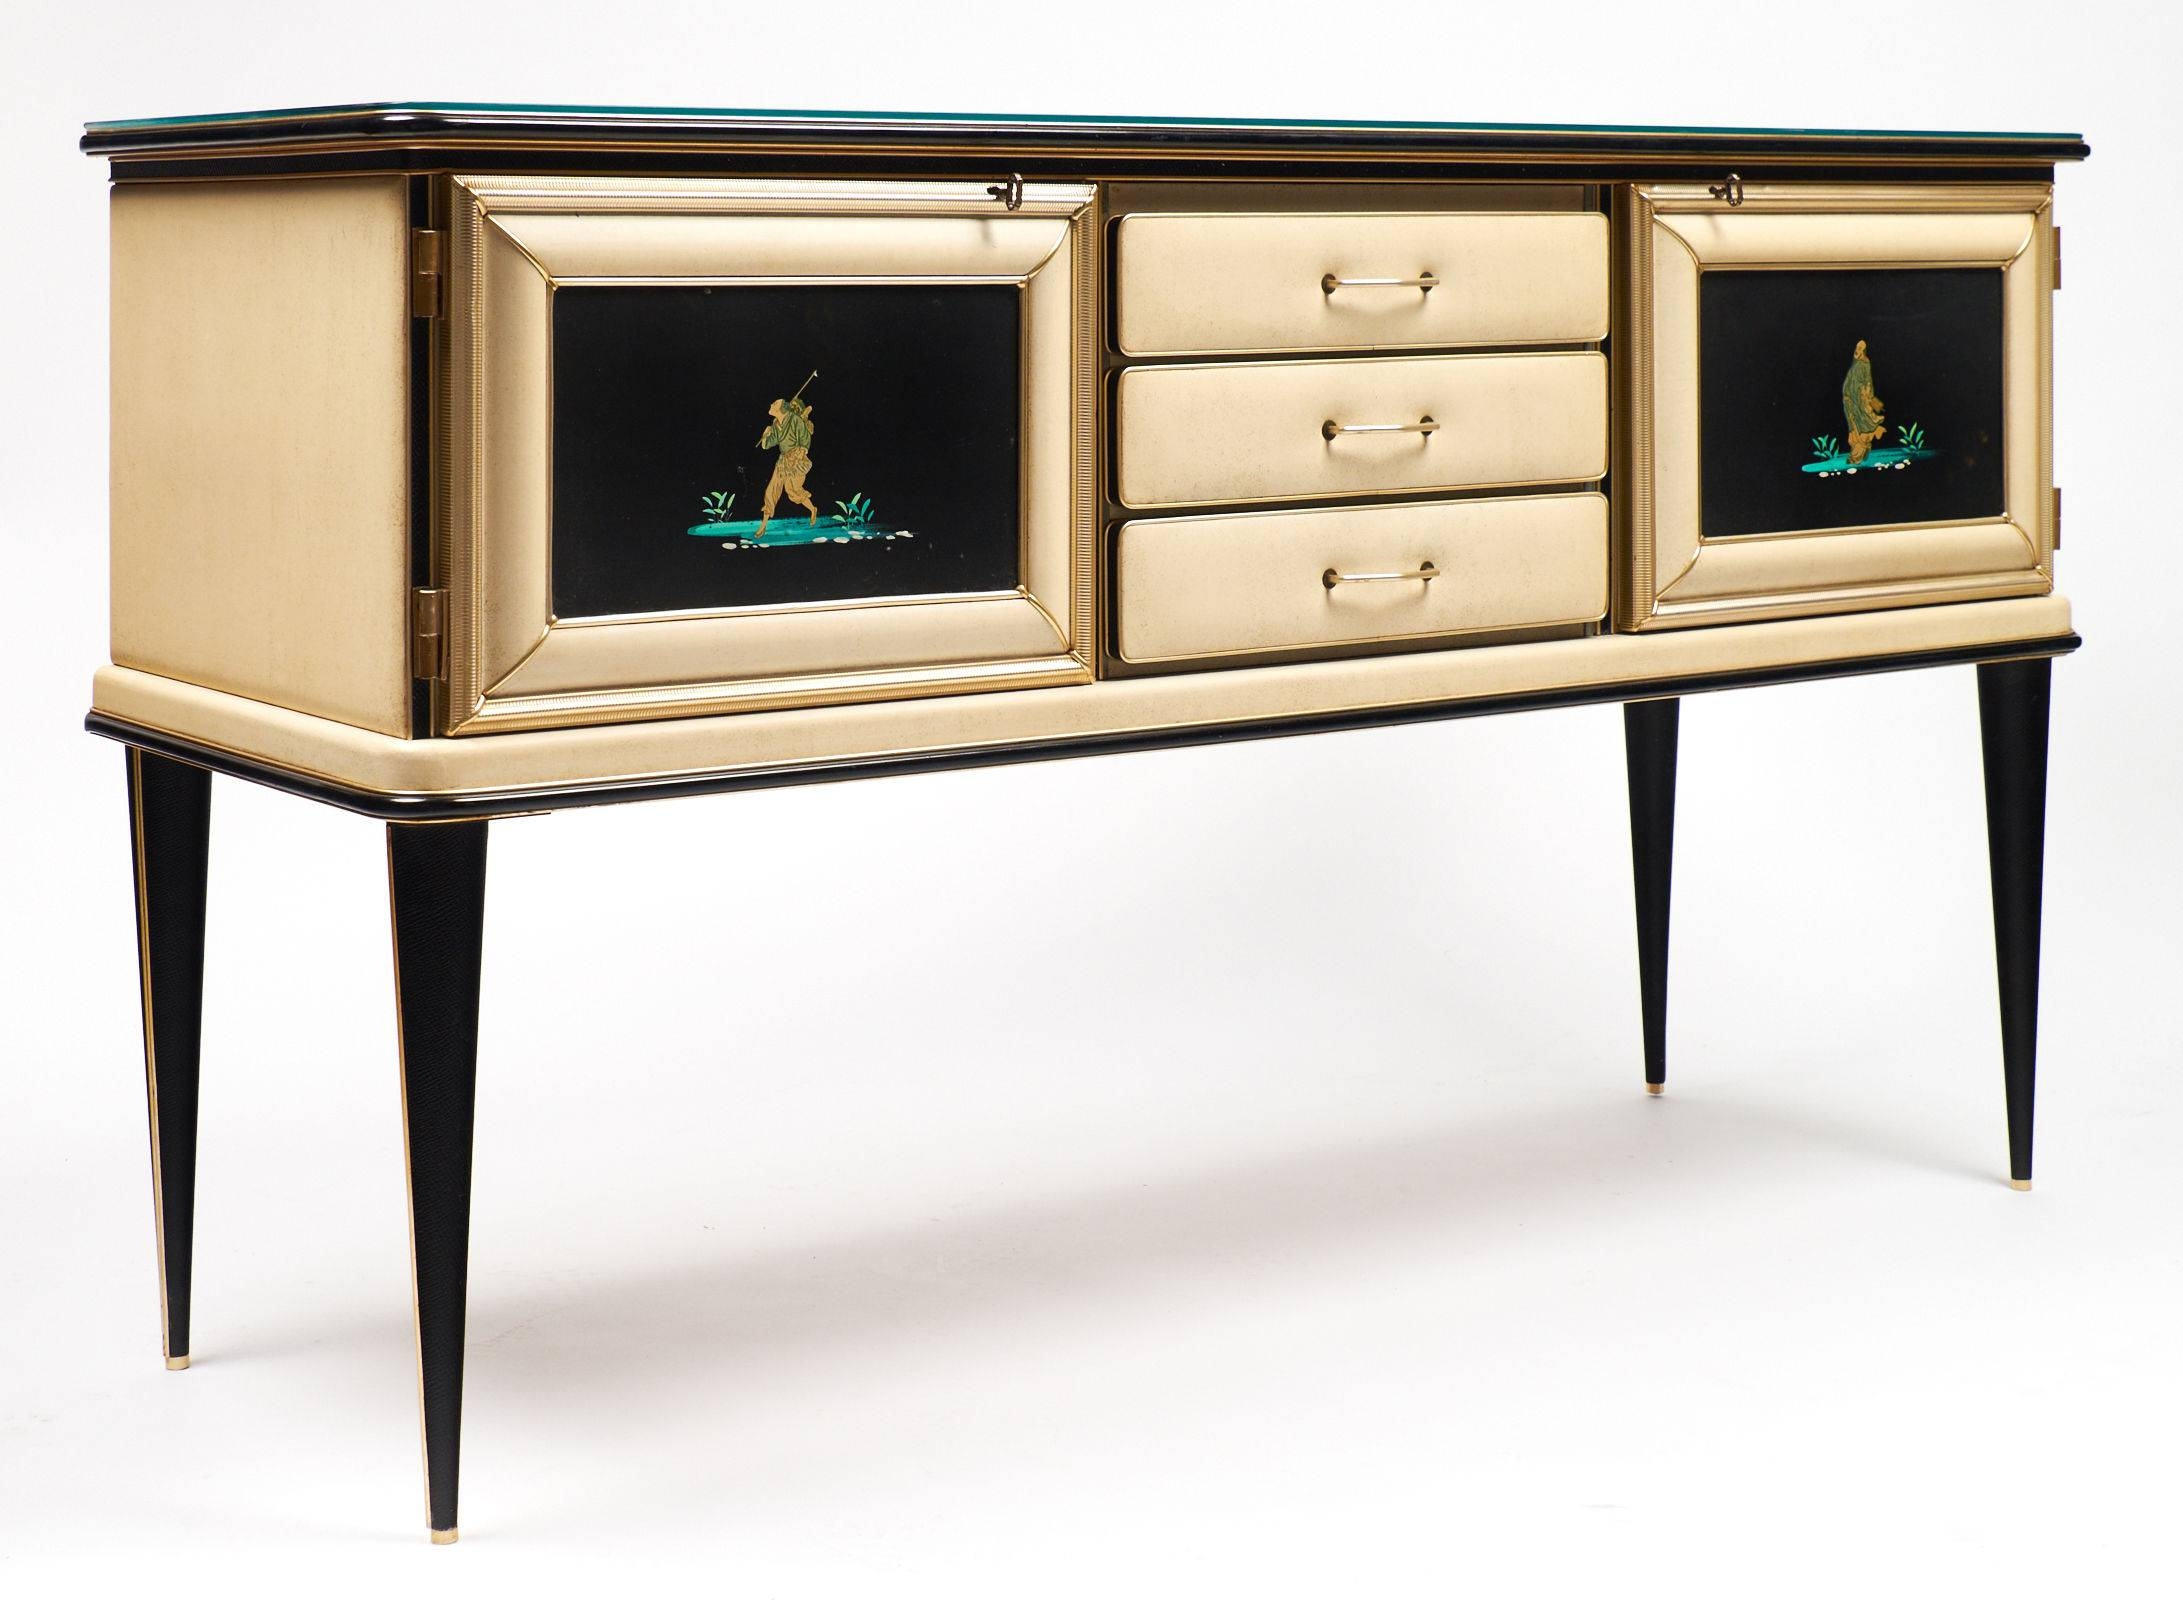 Vintage Umberto Mascagni Chinoiserie Sideboard - Jean Marc Fray pertaining to Chinoiserie Sideboards (Image 26 of 30)